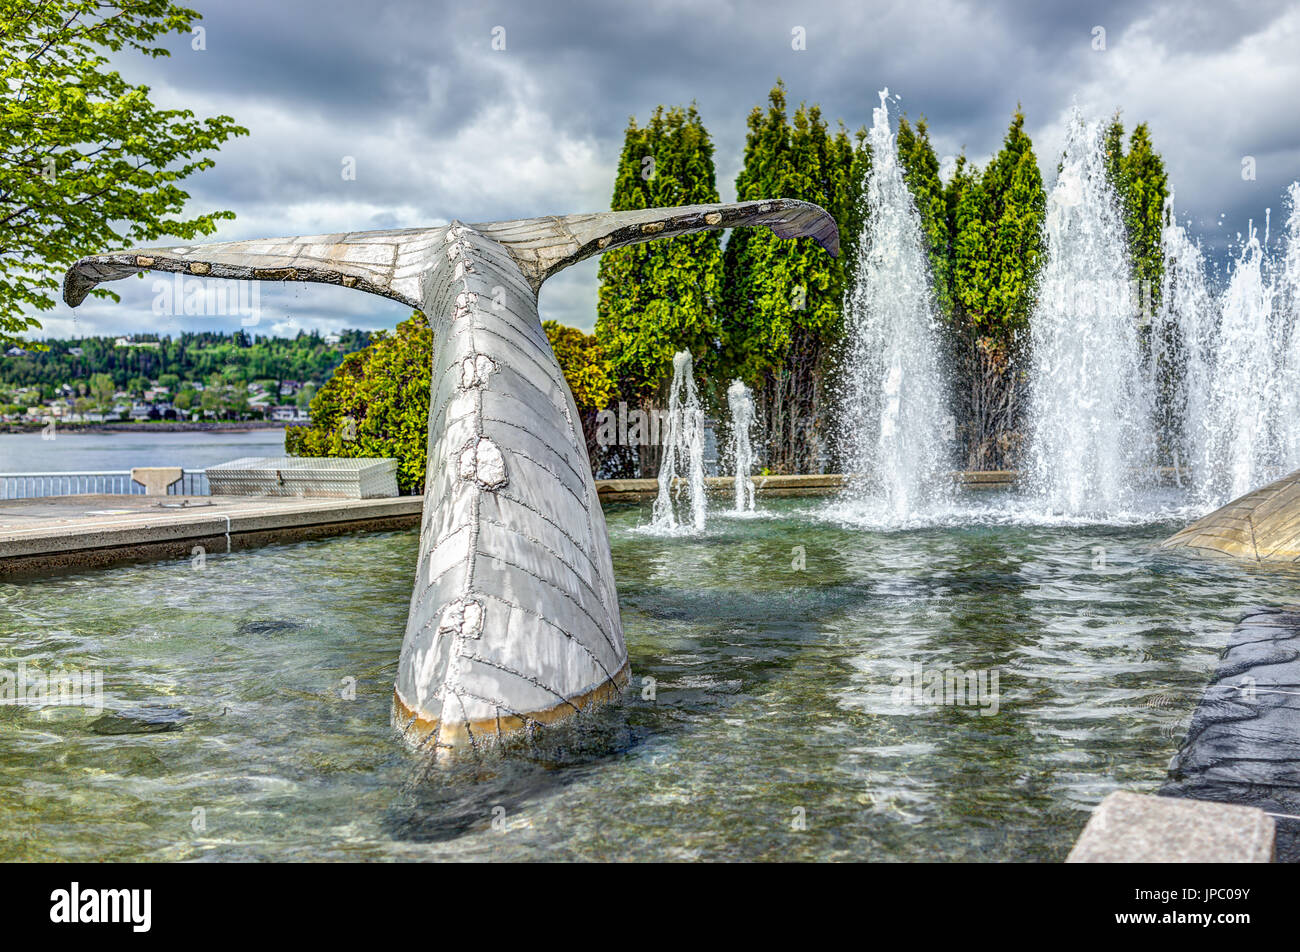 Saguenay, Canada - June 3, 2017: Closeup of by whale water fountain with tail in downtown city park in Quebec during Stock Photo